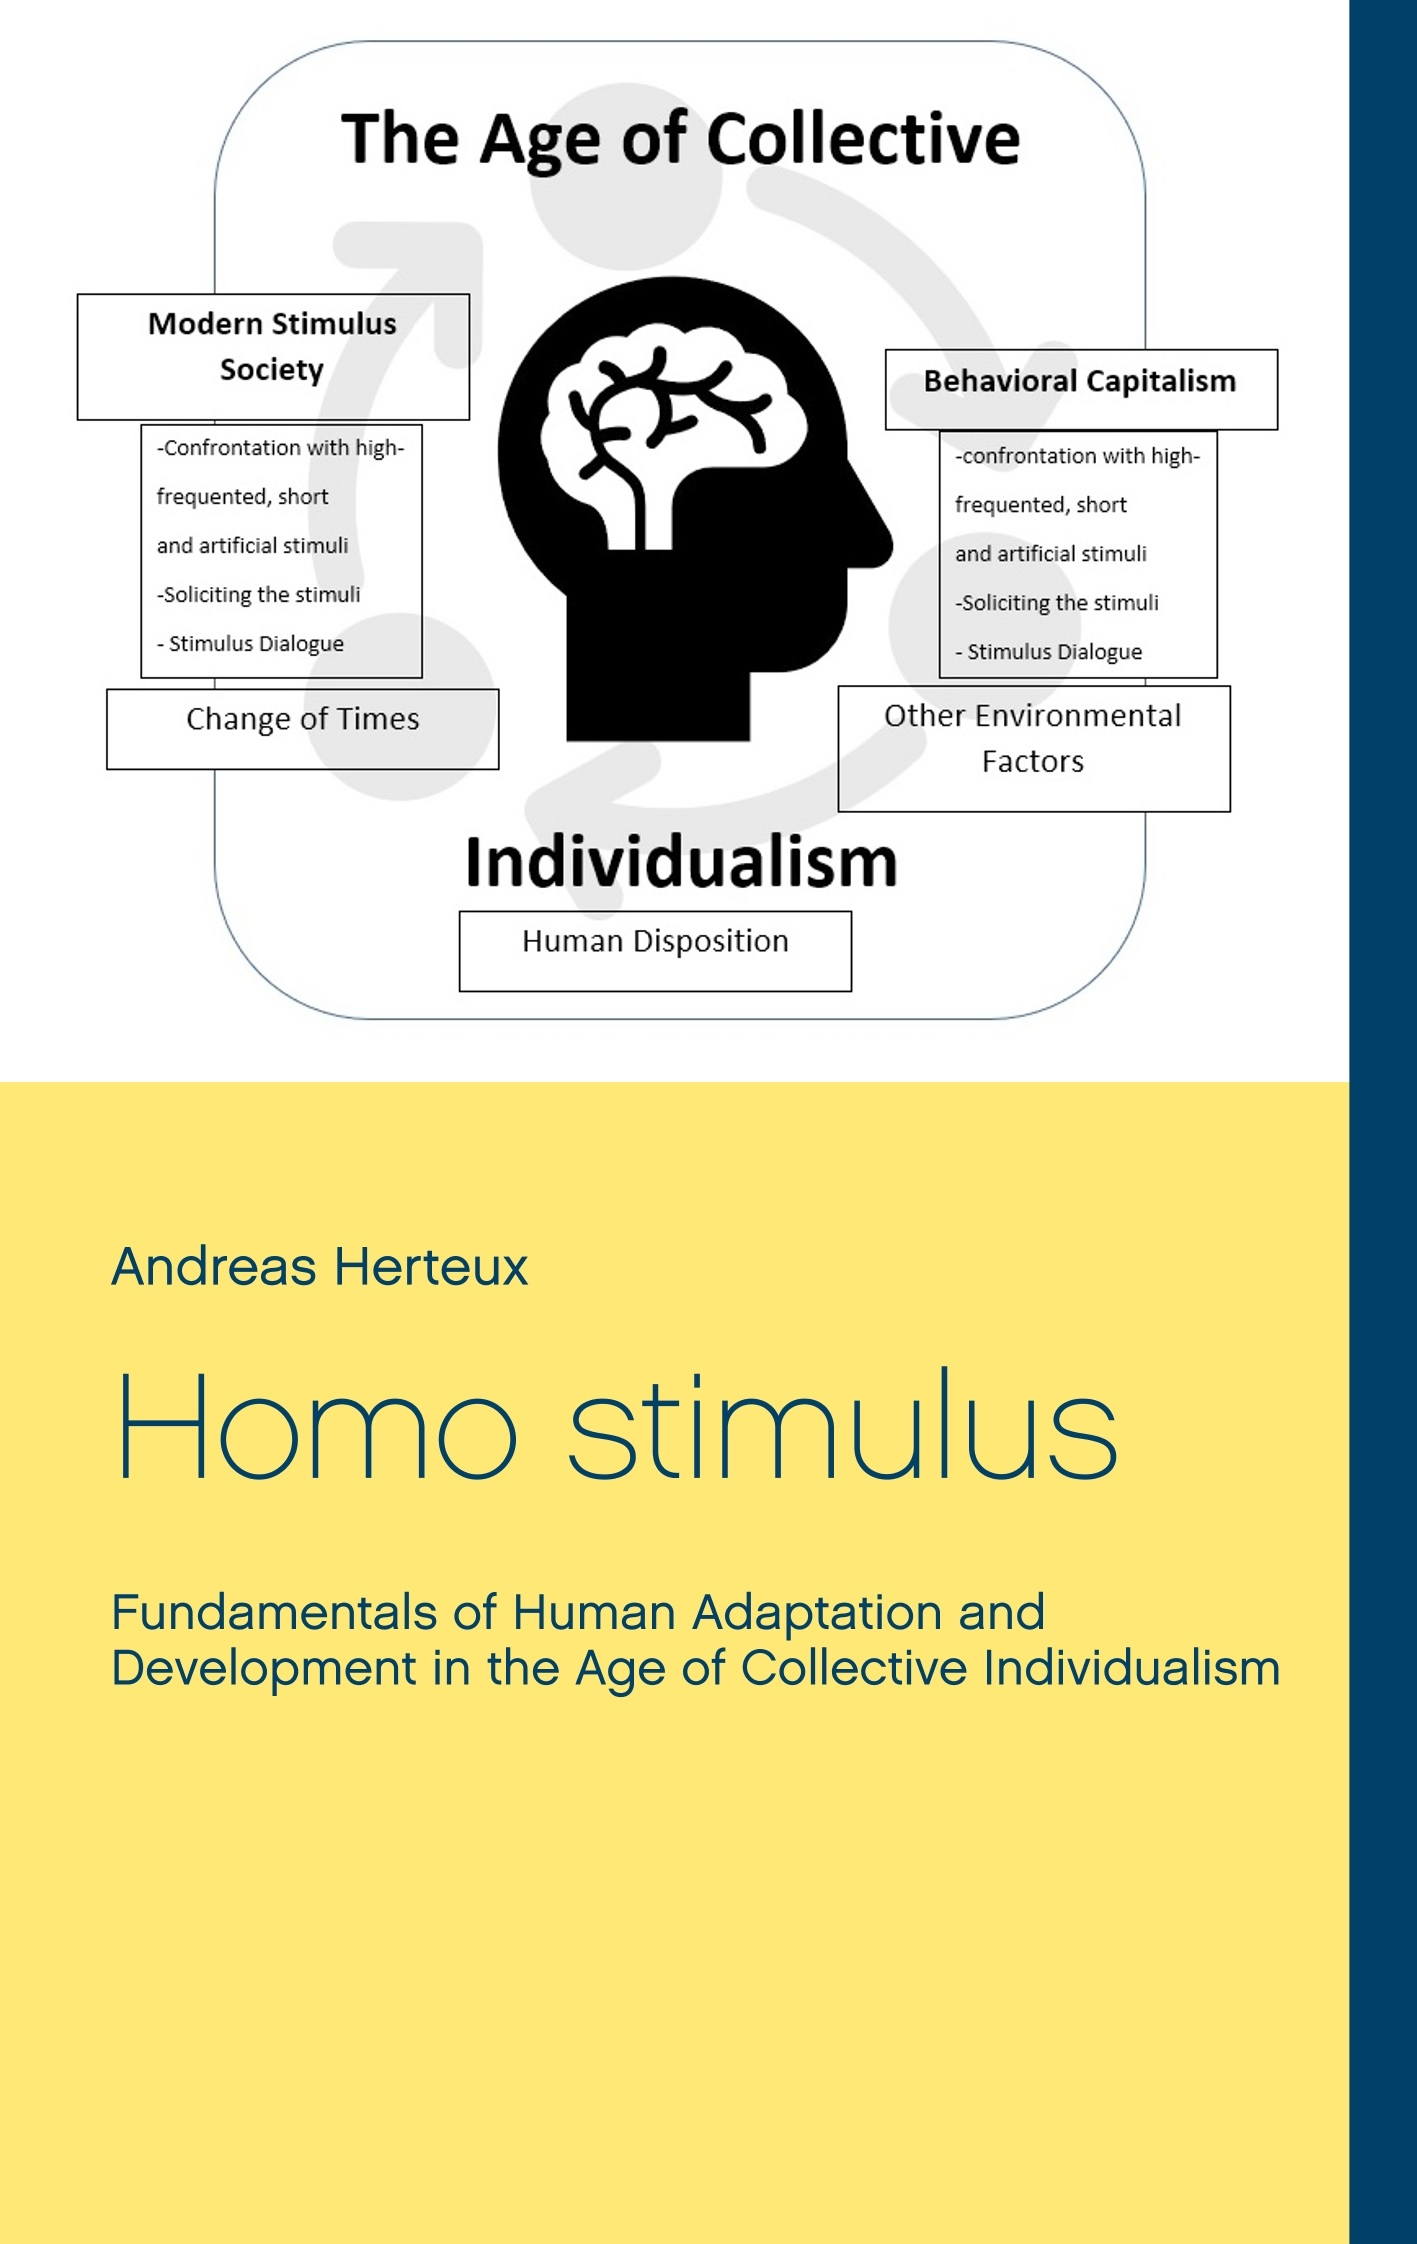 Homo stimulus: New monograph explains the Human Being of the 21st Century